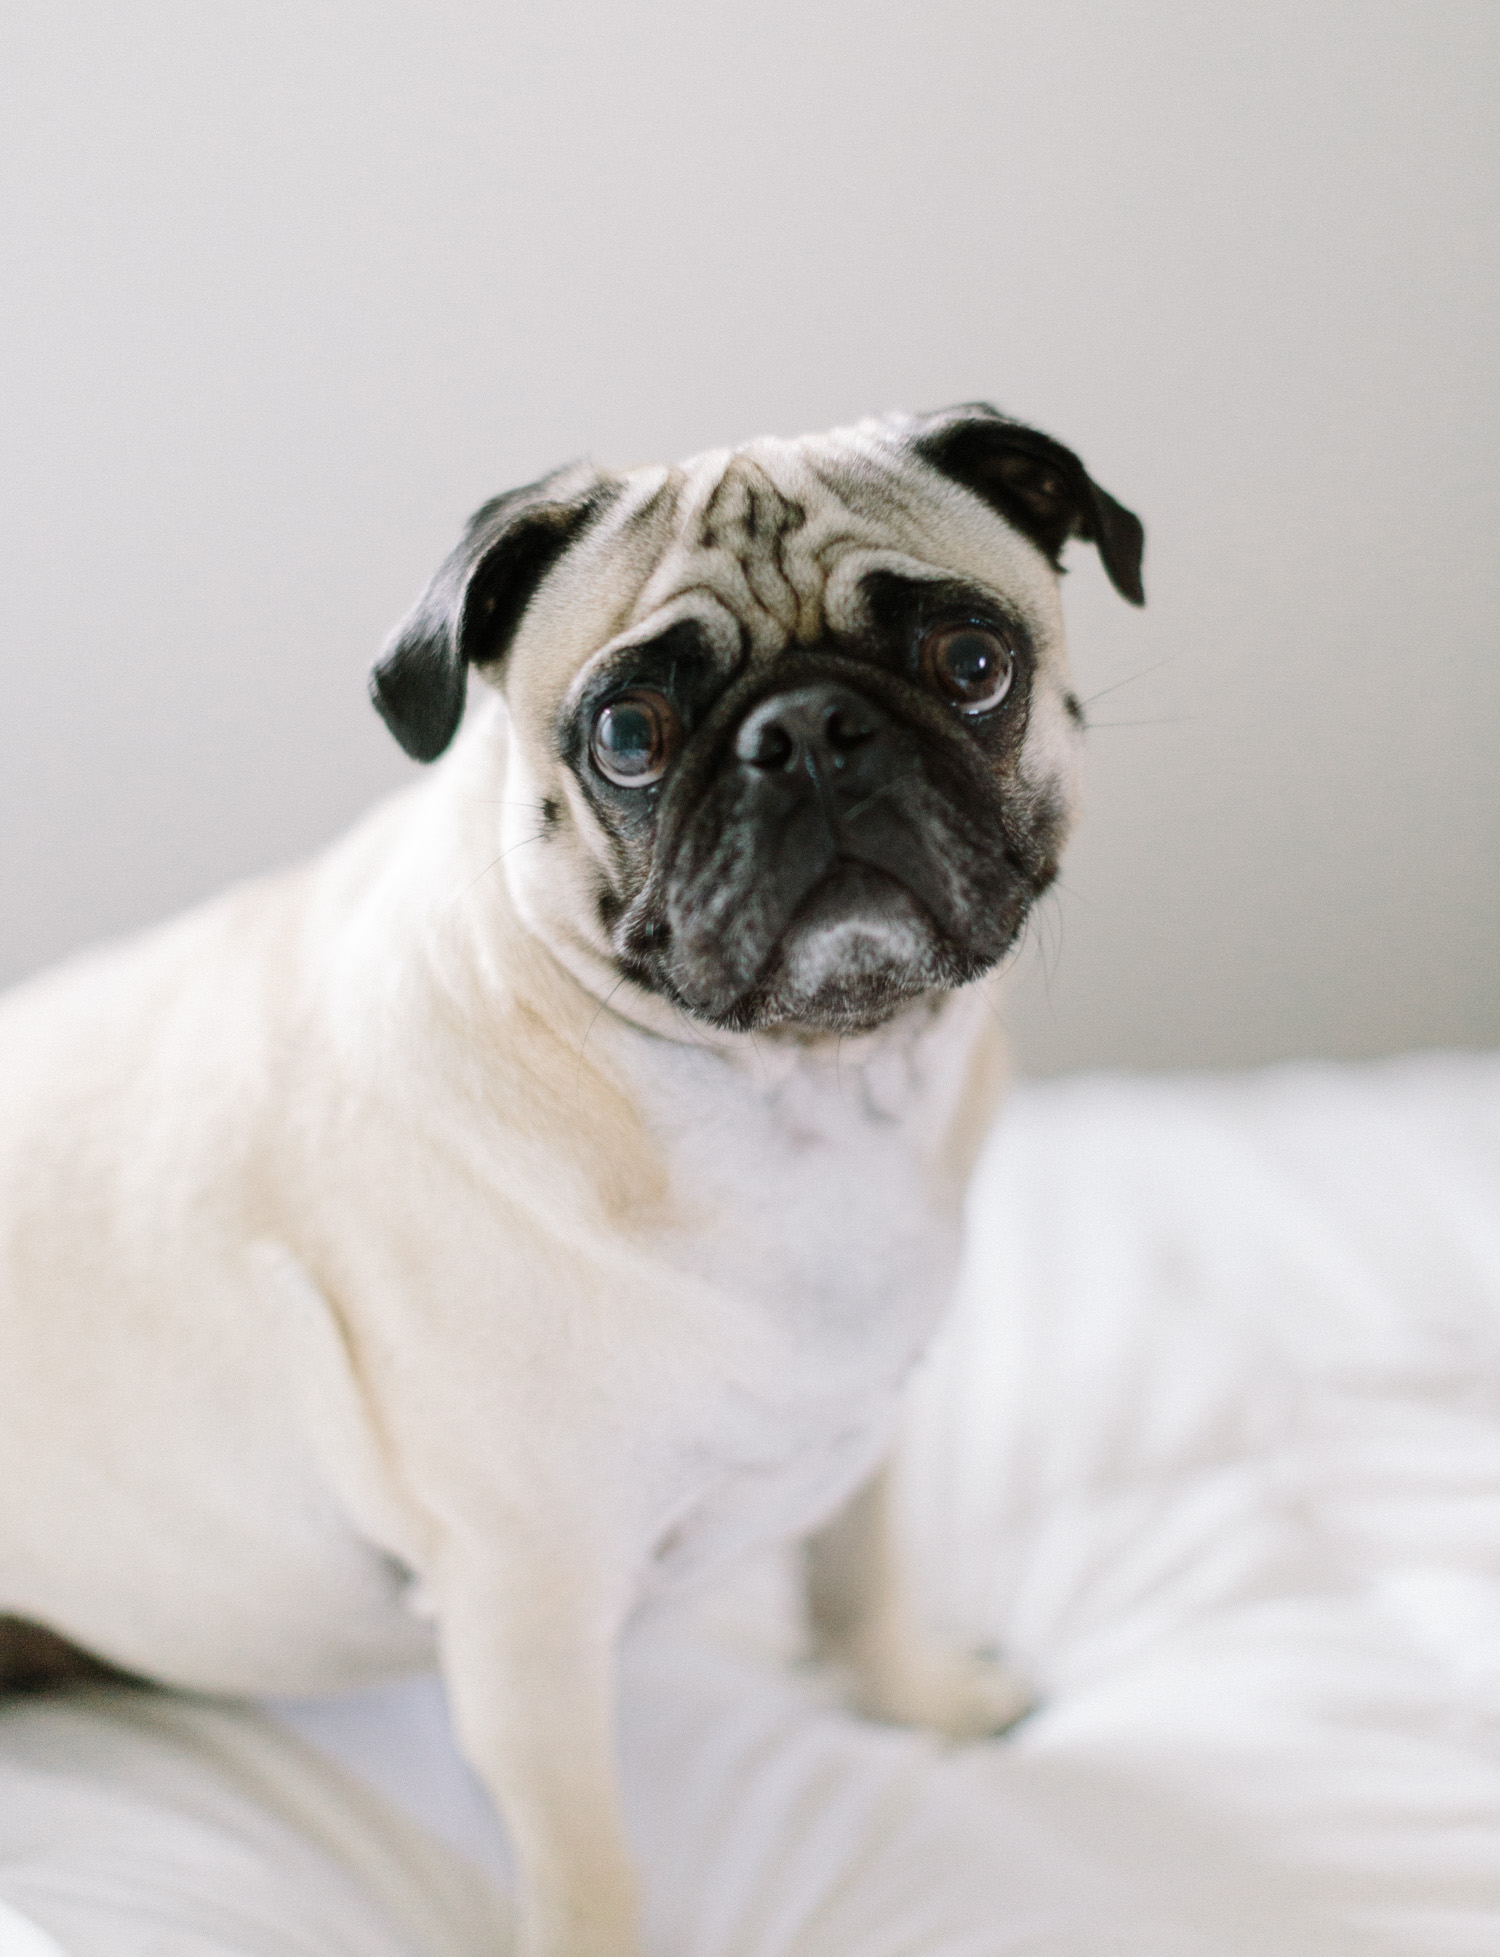 A pug with a wrinkly face looks at the camera in Detroit, Michigan